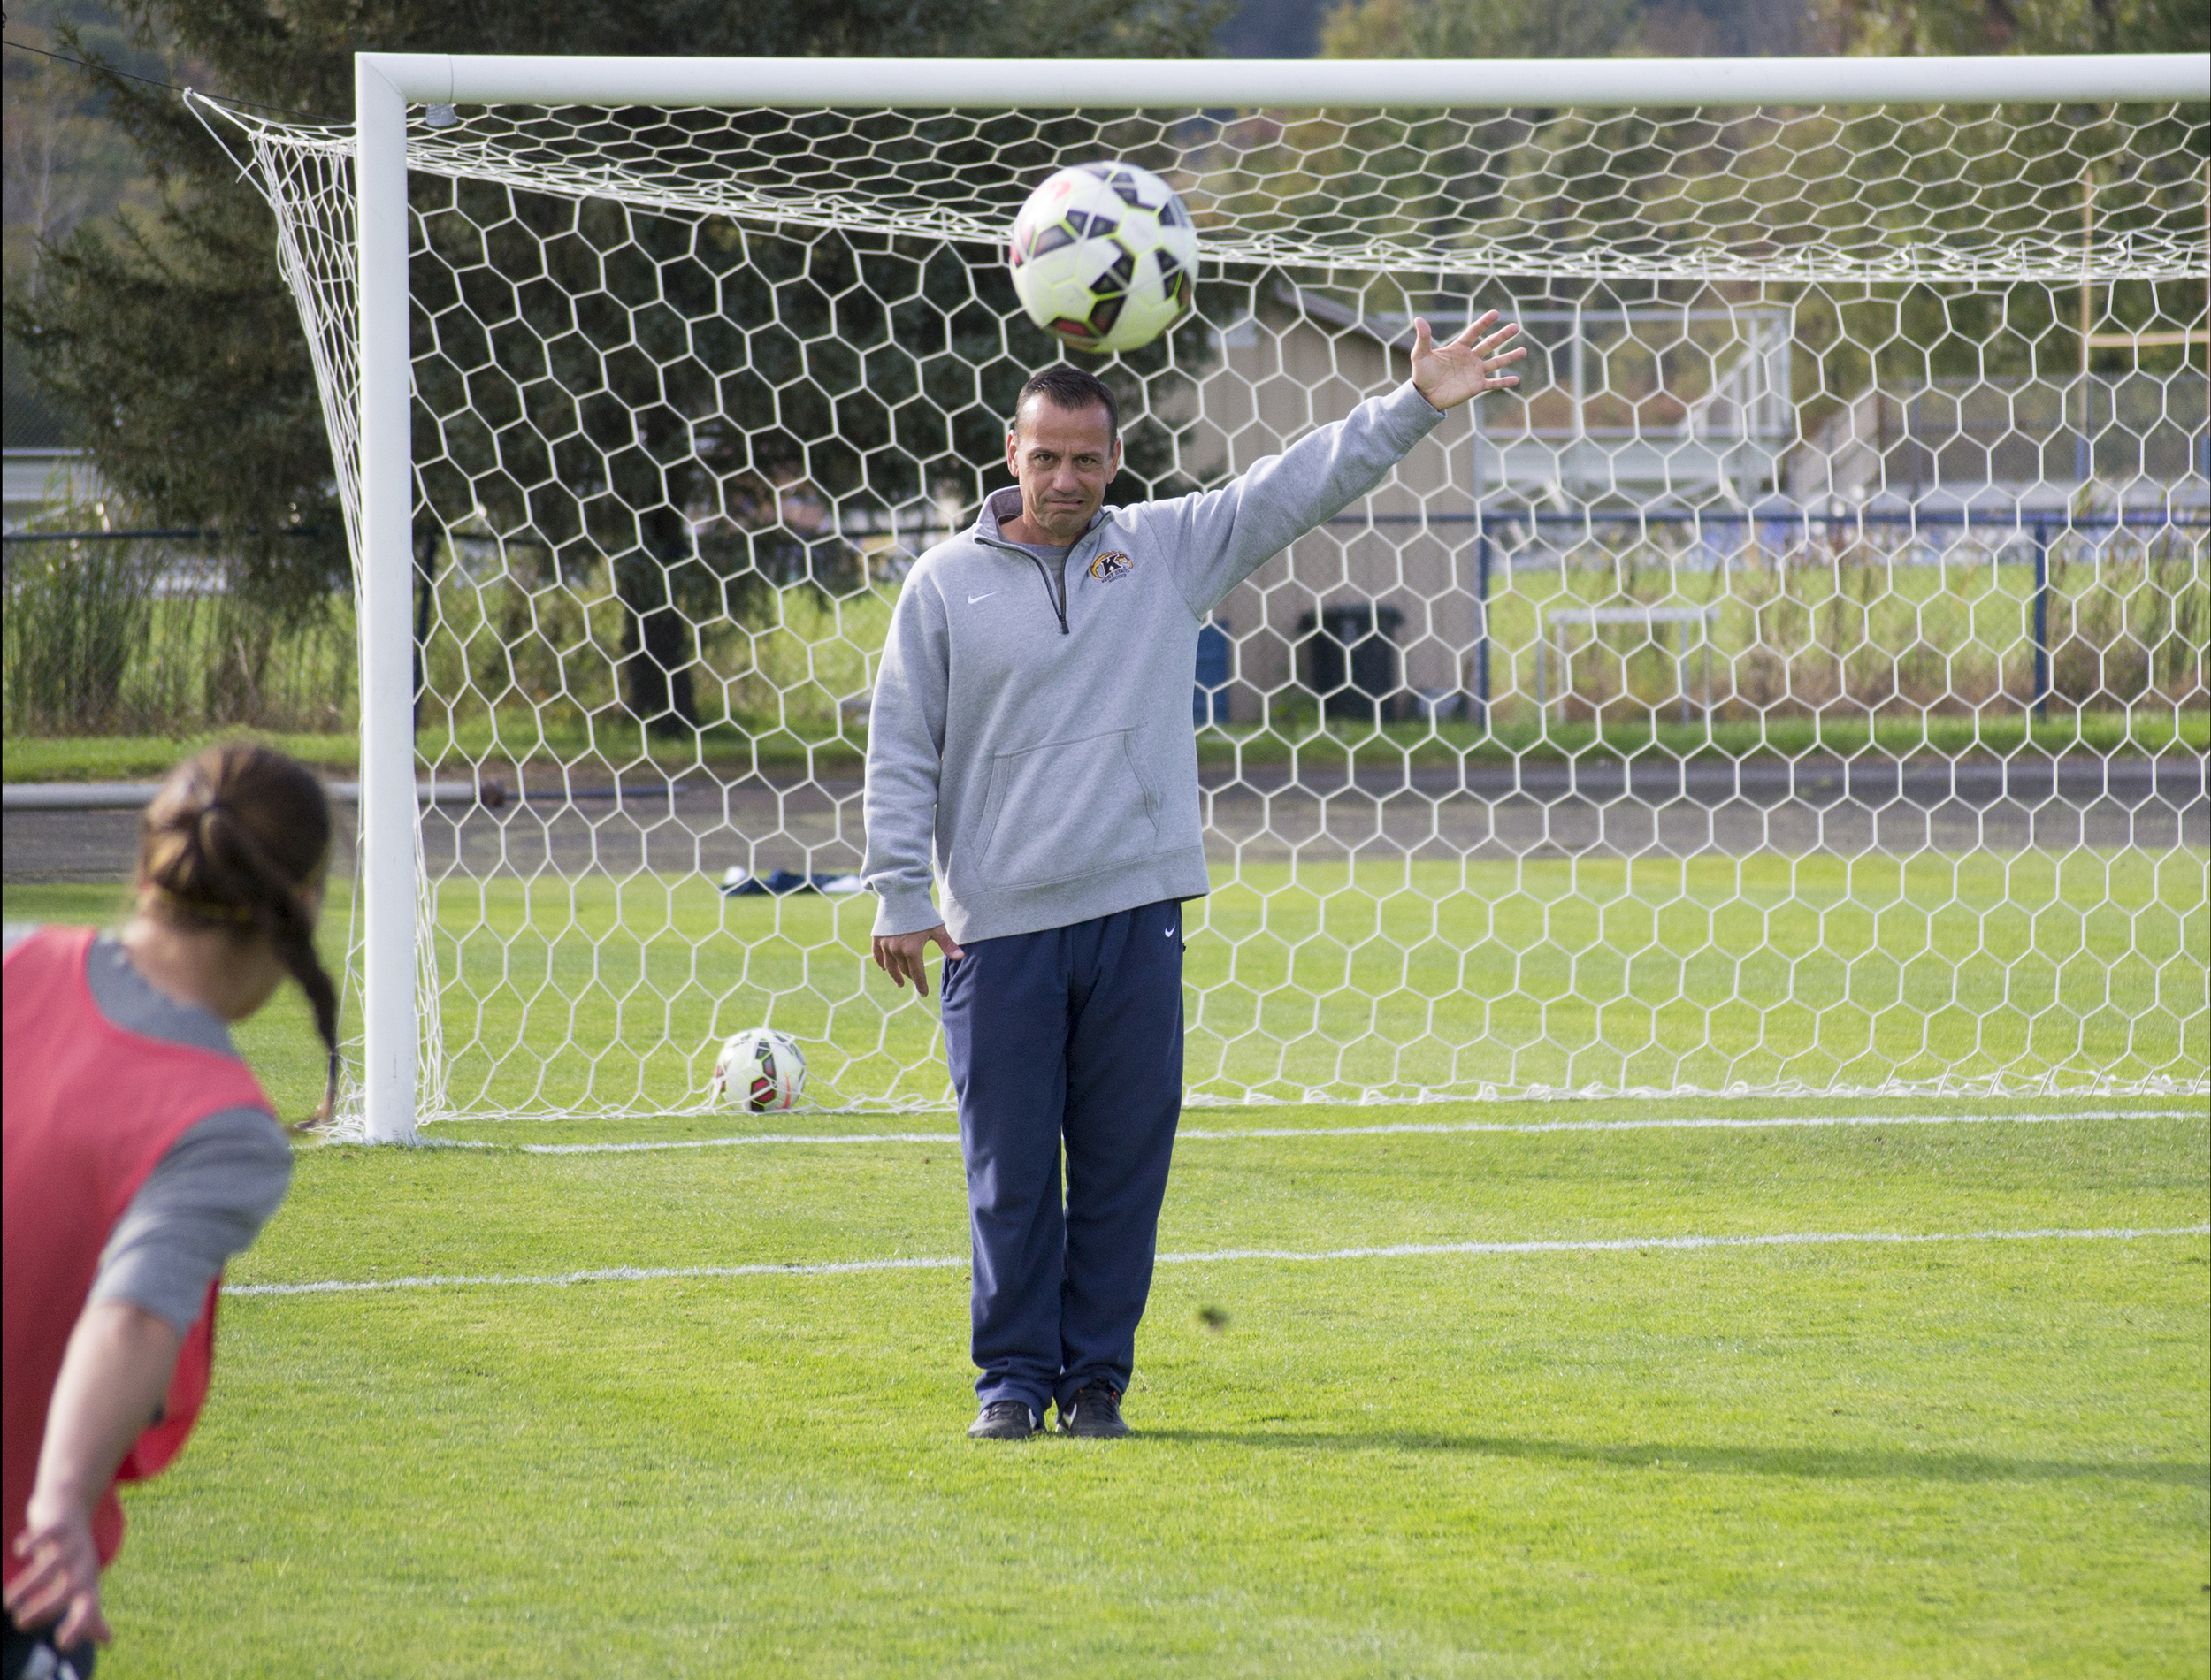 Rob Marinaro, head Coach of the Kent State University Women's soccer team, stays late after practice to help one of his free kick specialists,sophomore forward Jenna Hellstrom,at Zoeller Field on Oct. 9, 2014. After teaching them several ways to trick their opponents defense, he acted as a guide for aiming their shots to have the best chance of beating the keeper.